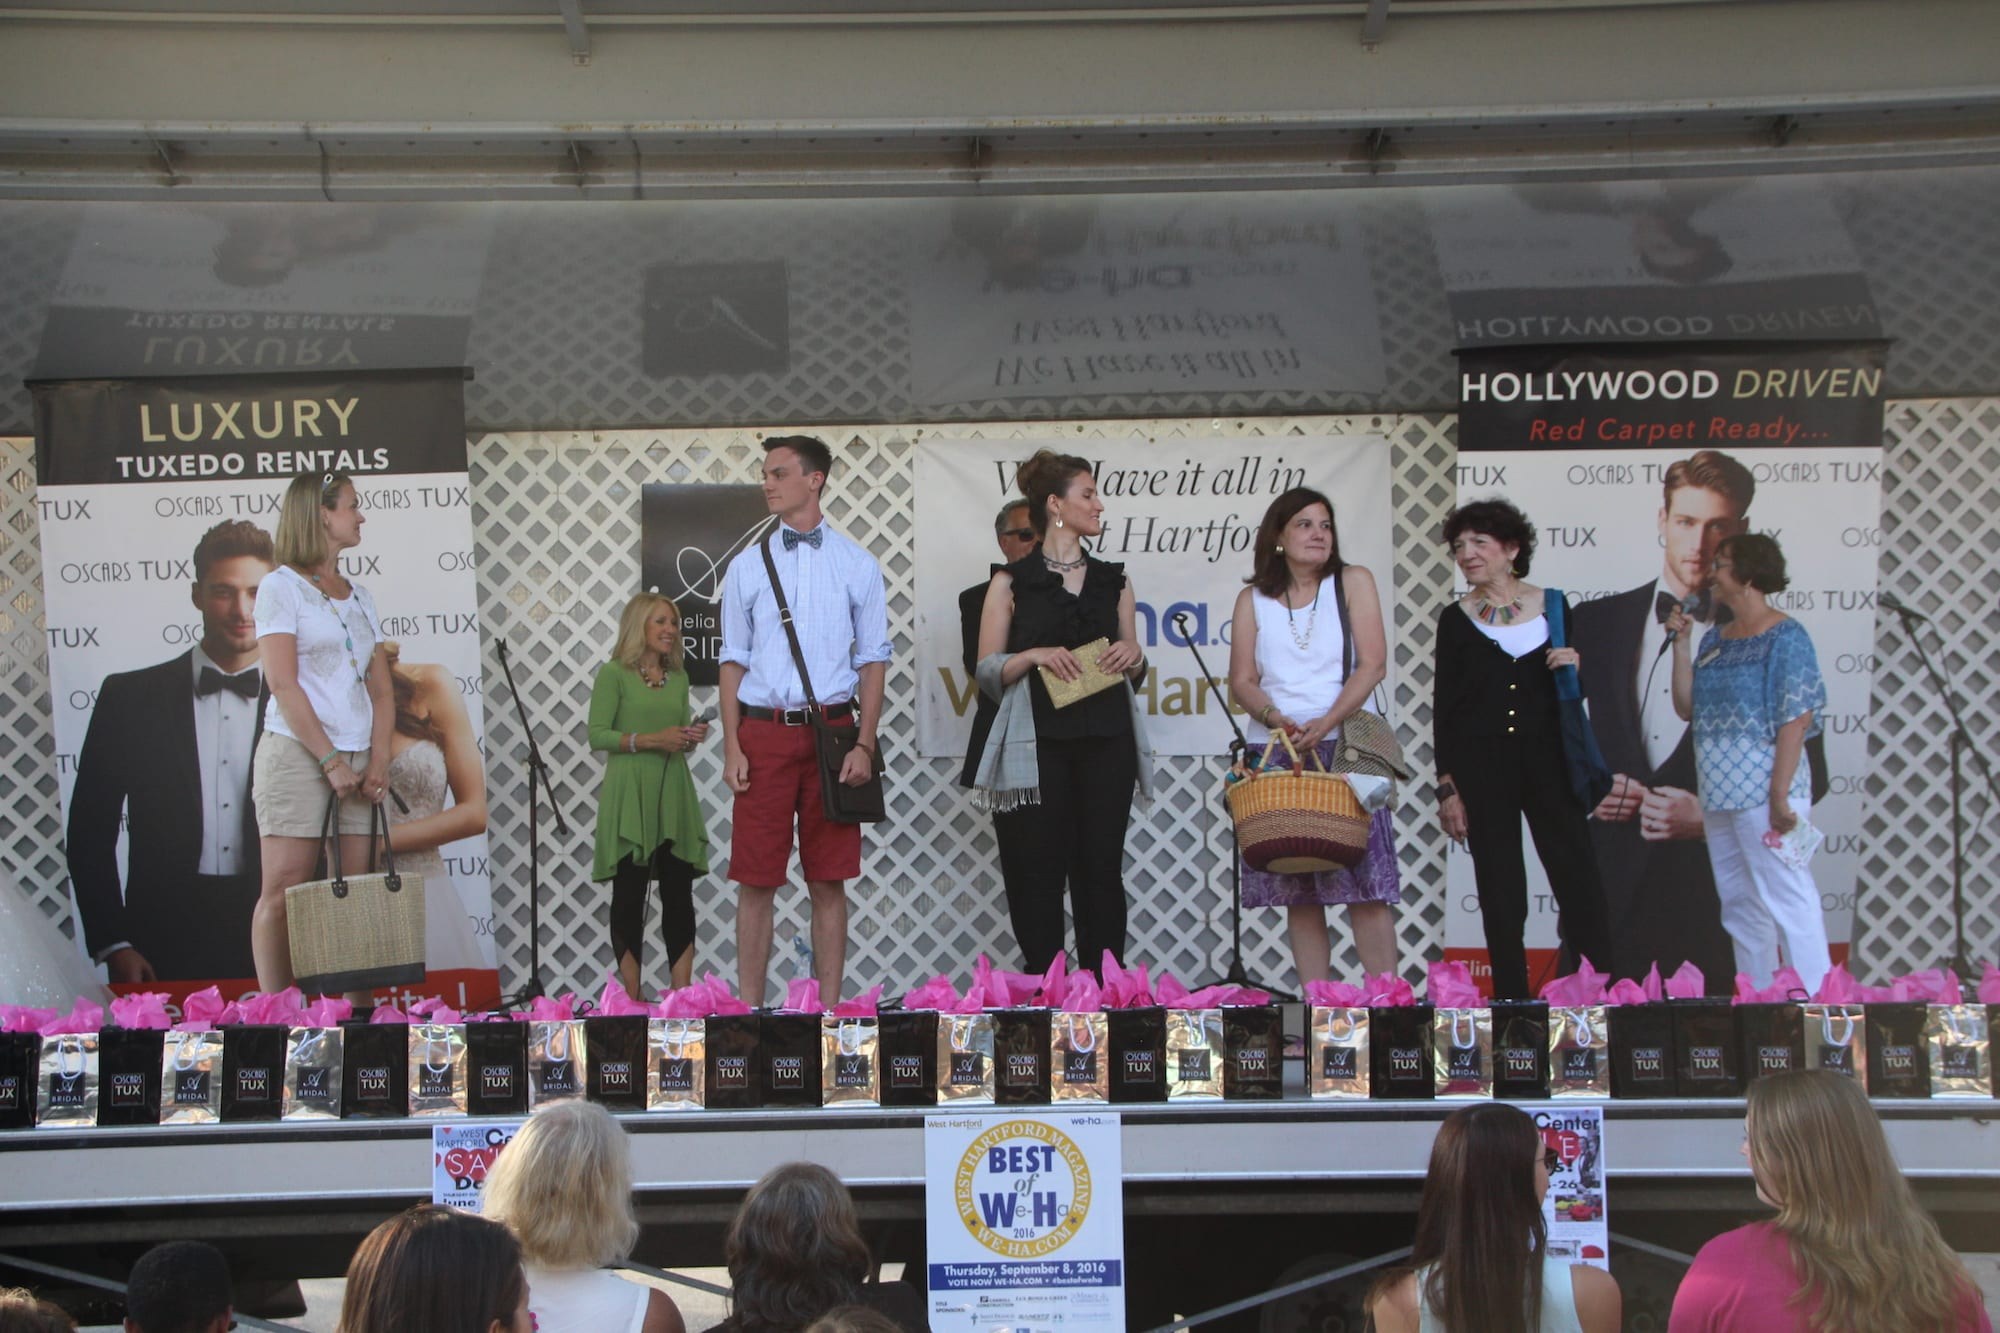 Fashion Show kicks off the Sale Days in West Hartford Center on the Town of West Hartford Showmobile stage on June 23, 2016, featuring Ten Thousand Villages. Photo credit:Dylan Carneiro